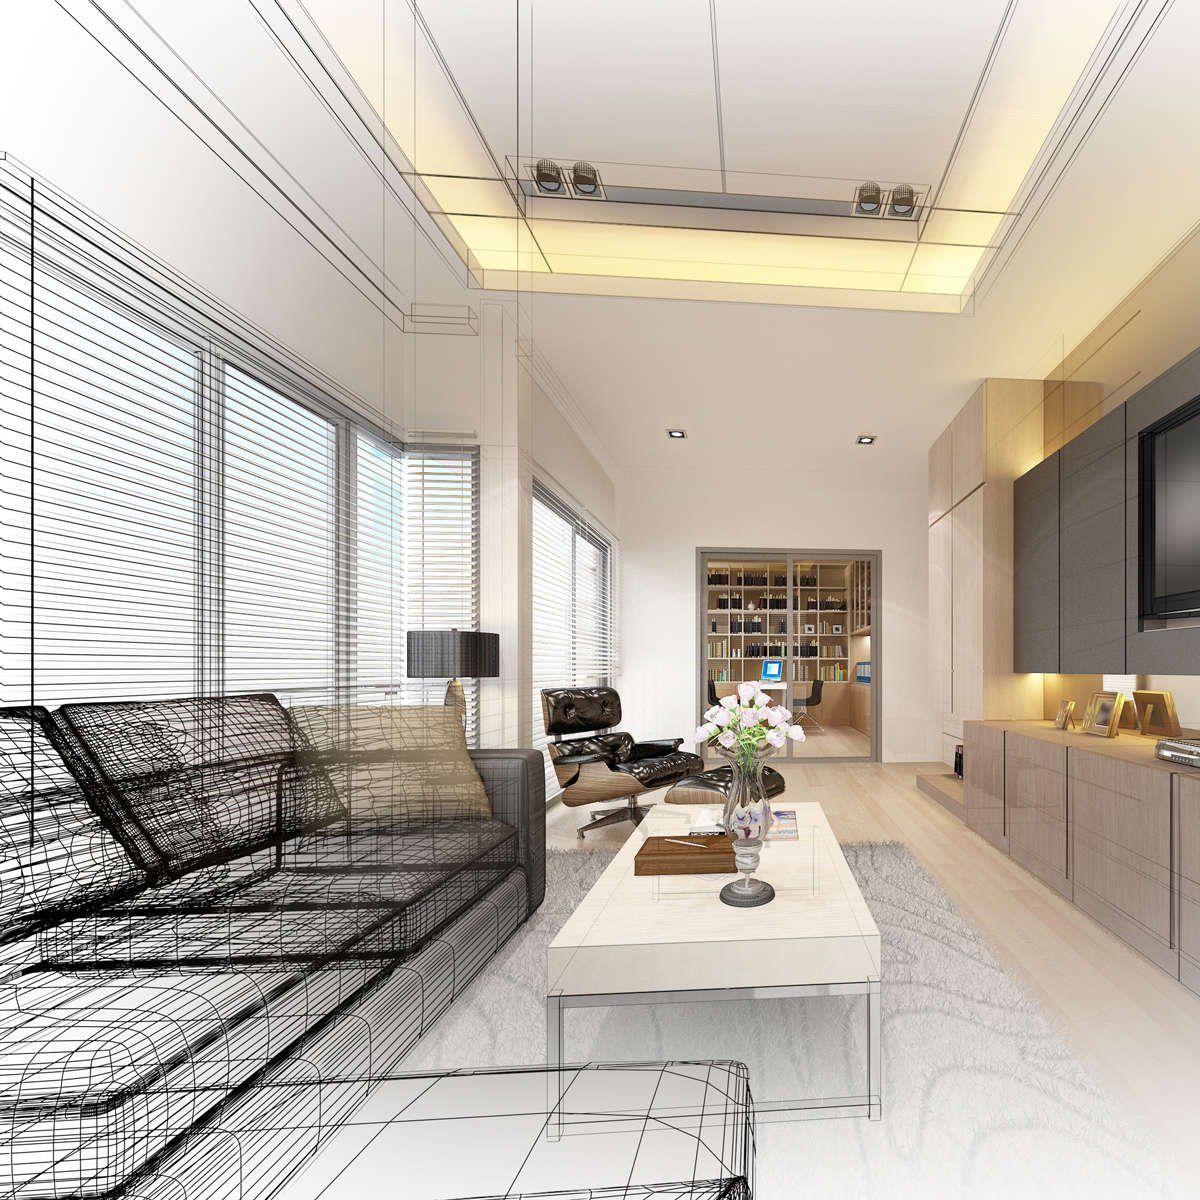 Interior Design & Home Decorator in Hong Kong | Atelier Lane (HK)